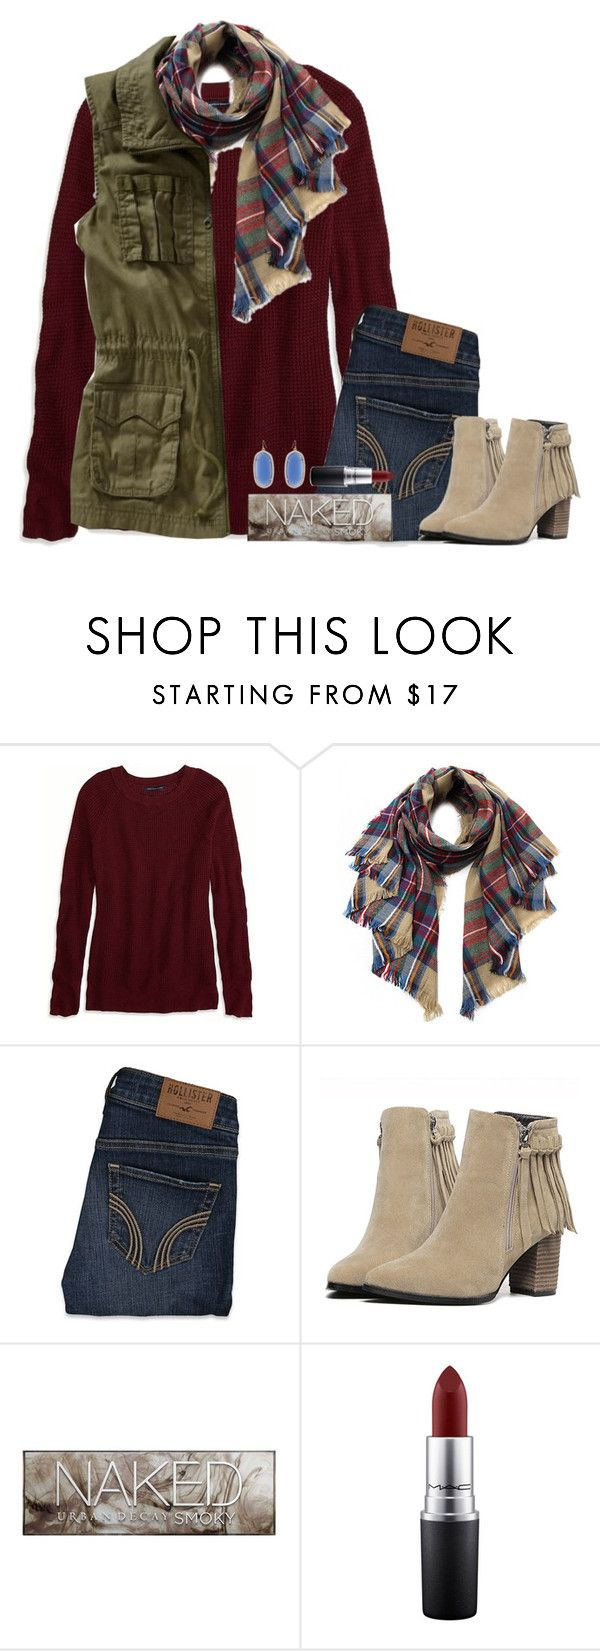 """""""I don't love you anymore."""" by bloom17 ❤ liked on Polyvore featuring American Eagle Outfitters, Old Navy, Hollister Co., Urban Decay, MAC Cosmetics, Kendra Scott, women's clothing, women, female and woman"""